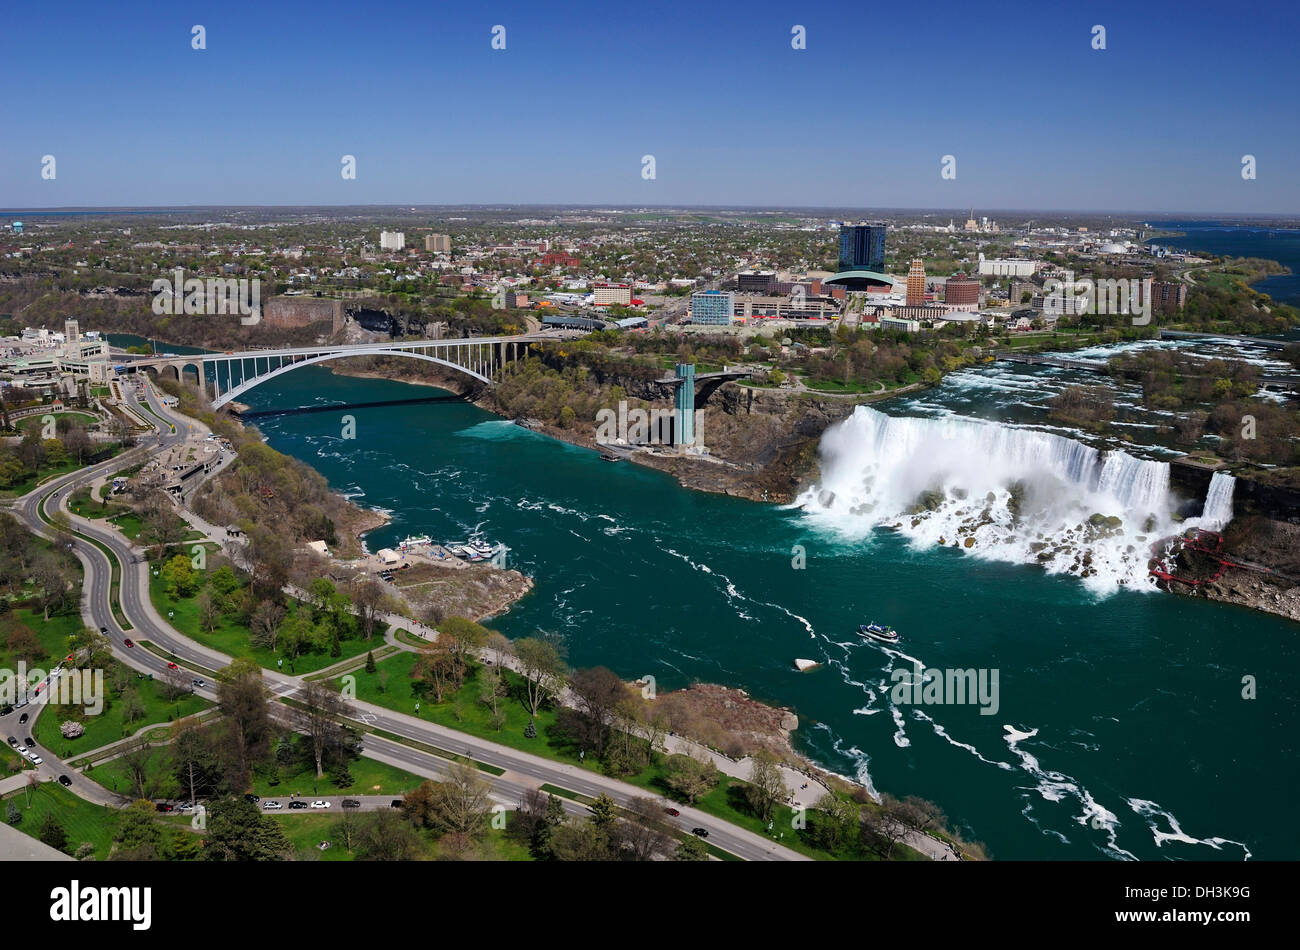 Niagara Falls with a view of the Americans side from Ontario, Canada - Stock Image